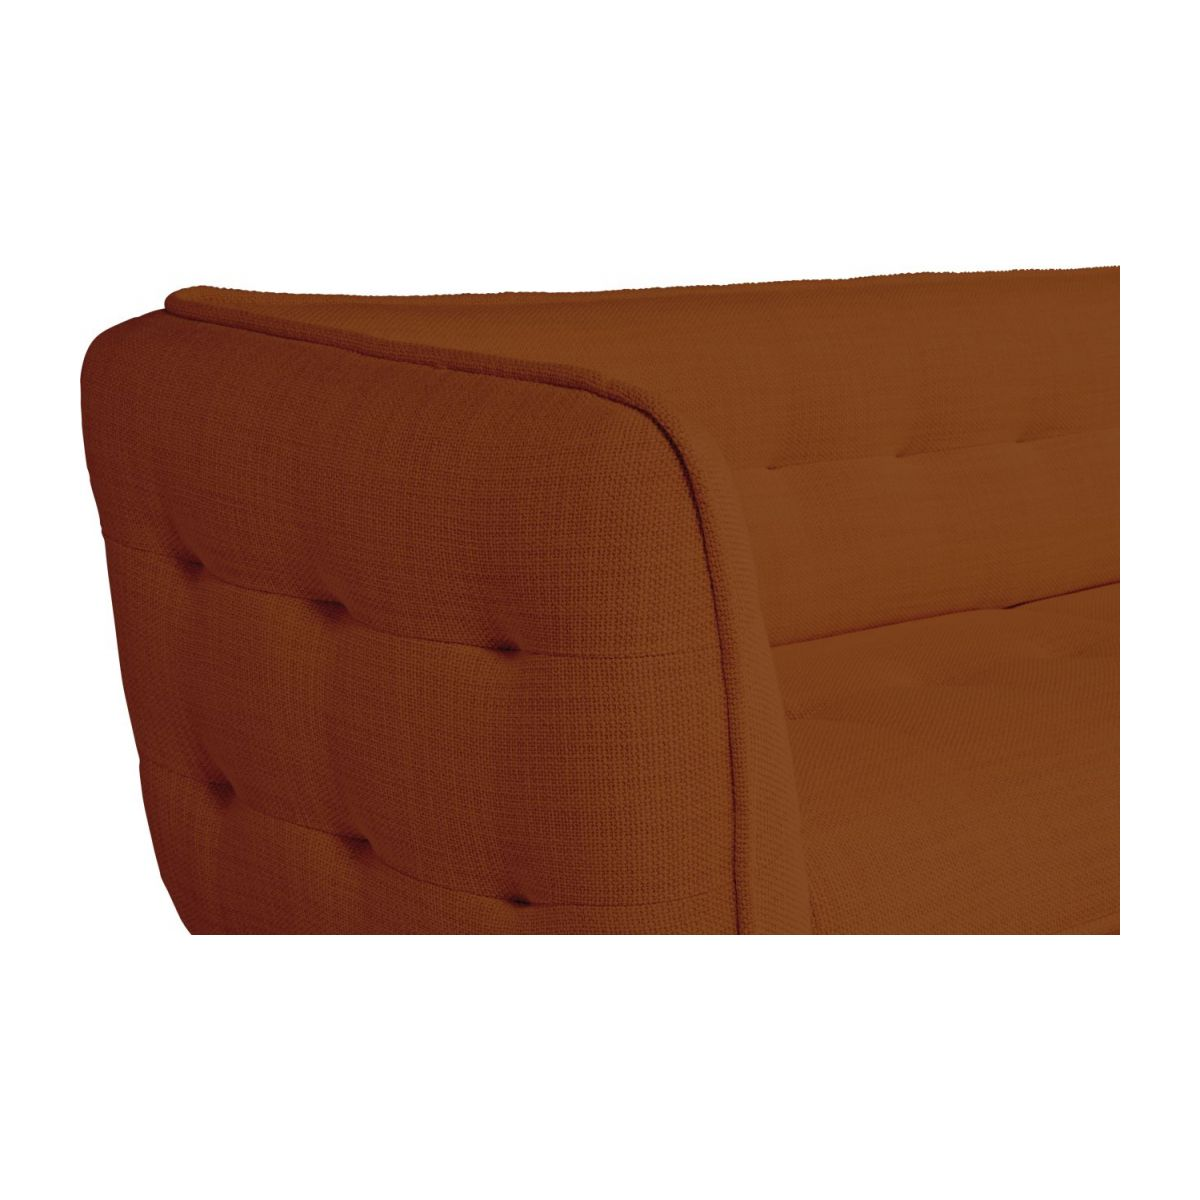 3 seater sofa in Fasoli fabric, warm red rock and oak legs n°5